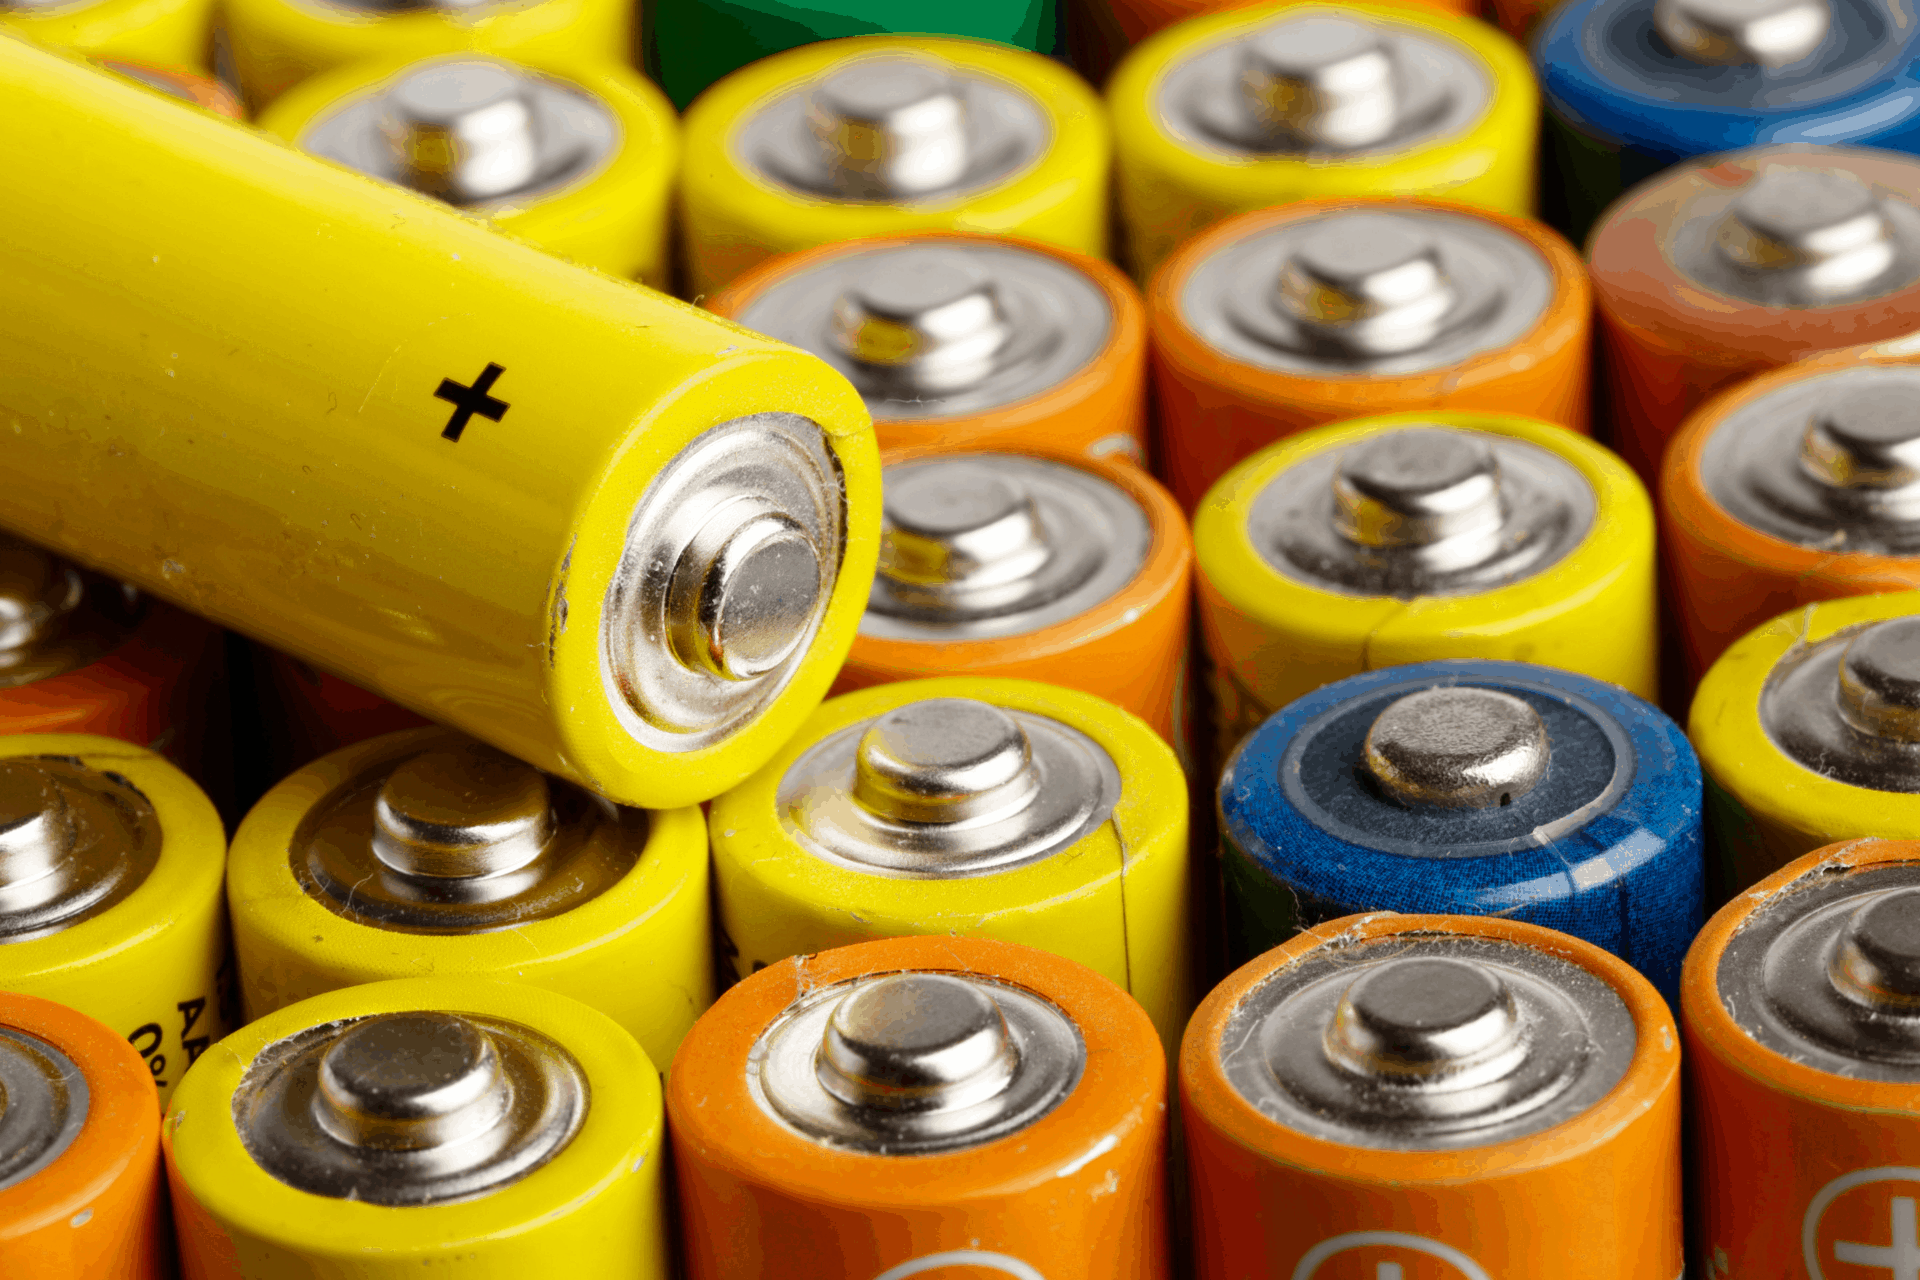 Cadmium Toxicity from Batteries